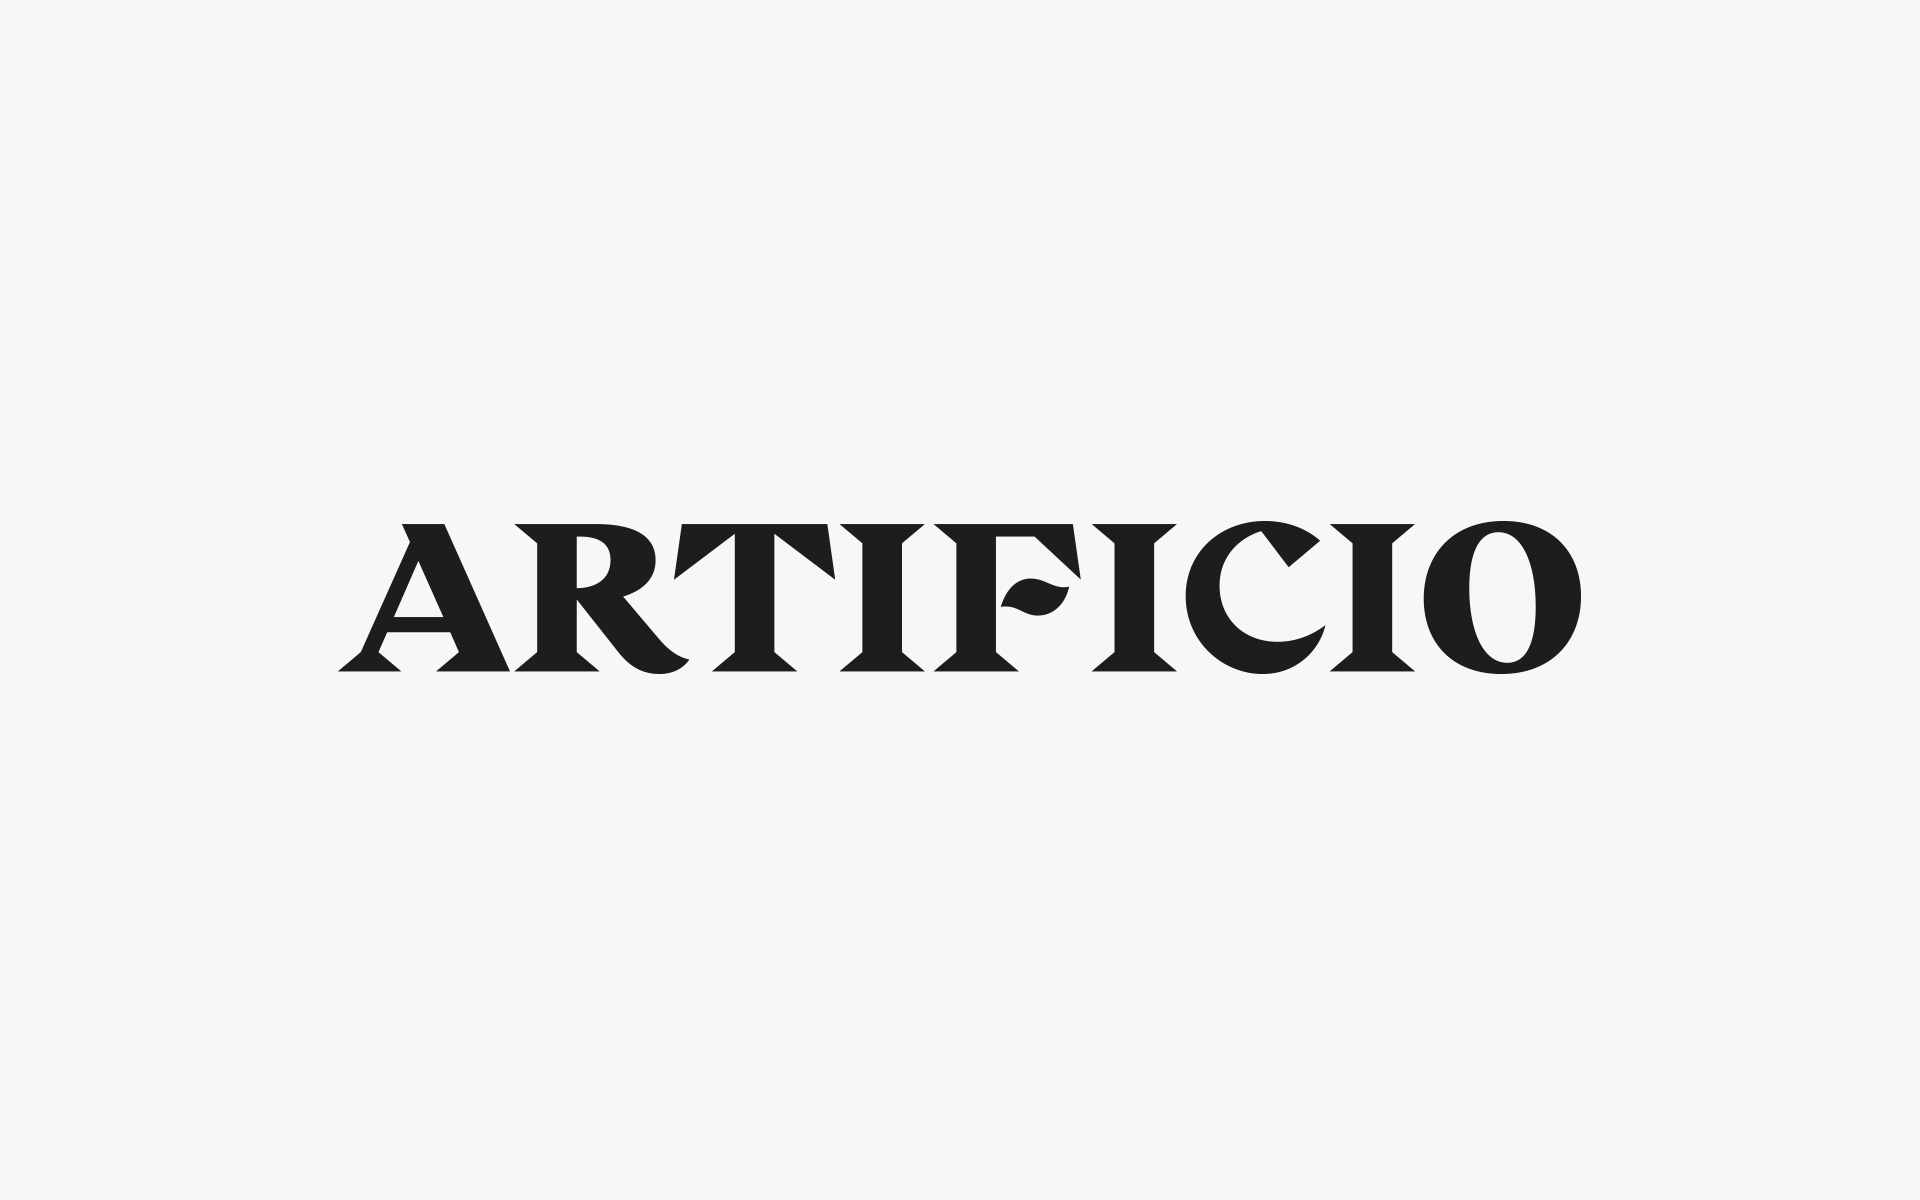 artificio_logo